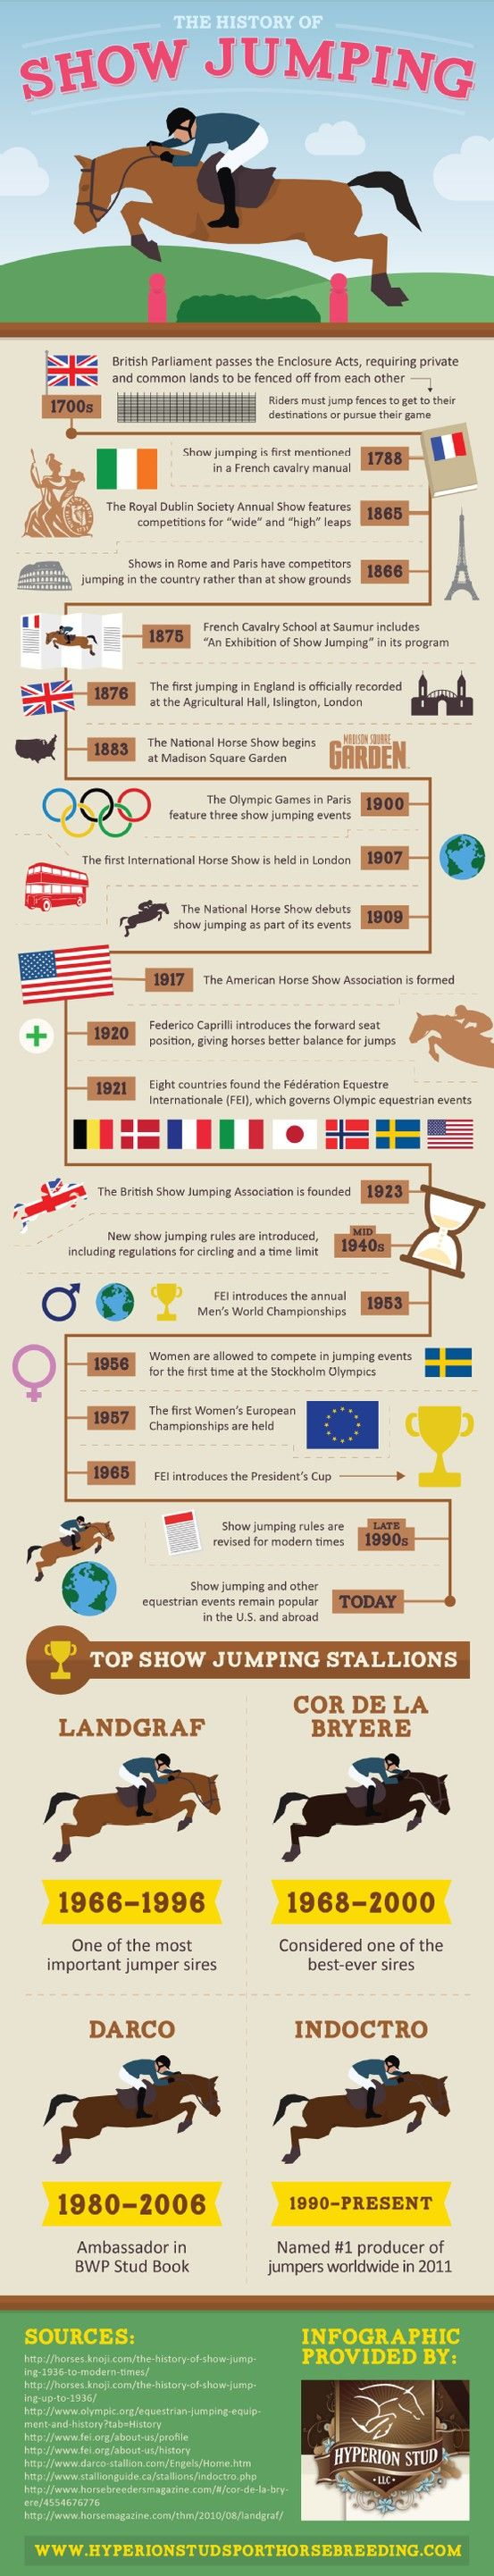 If you're like most members of the equestrian community, you've probably developed a deep appreciation for the sport of show jumping. How much do you know about its historical origins? This infographic explains how the evolution of show jumping began in the 1700s.